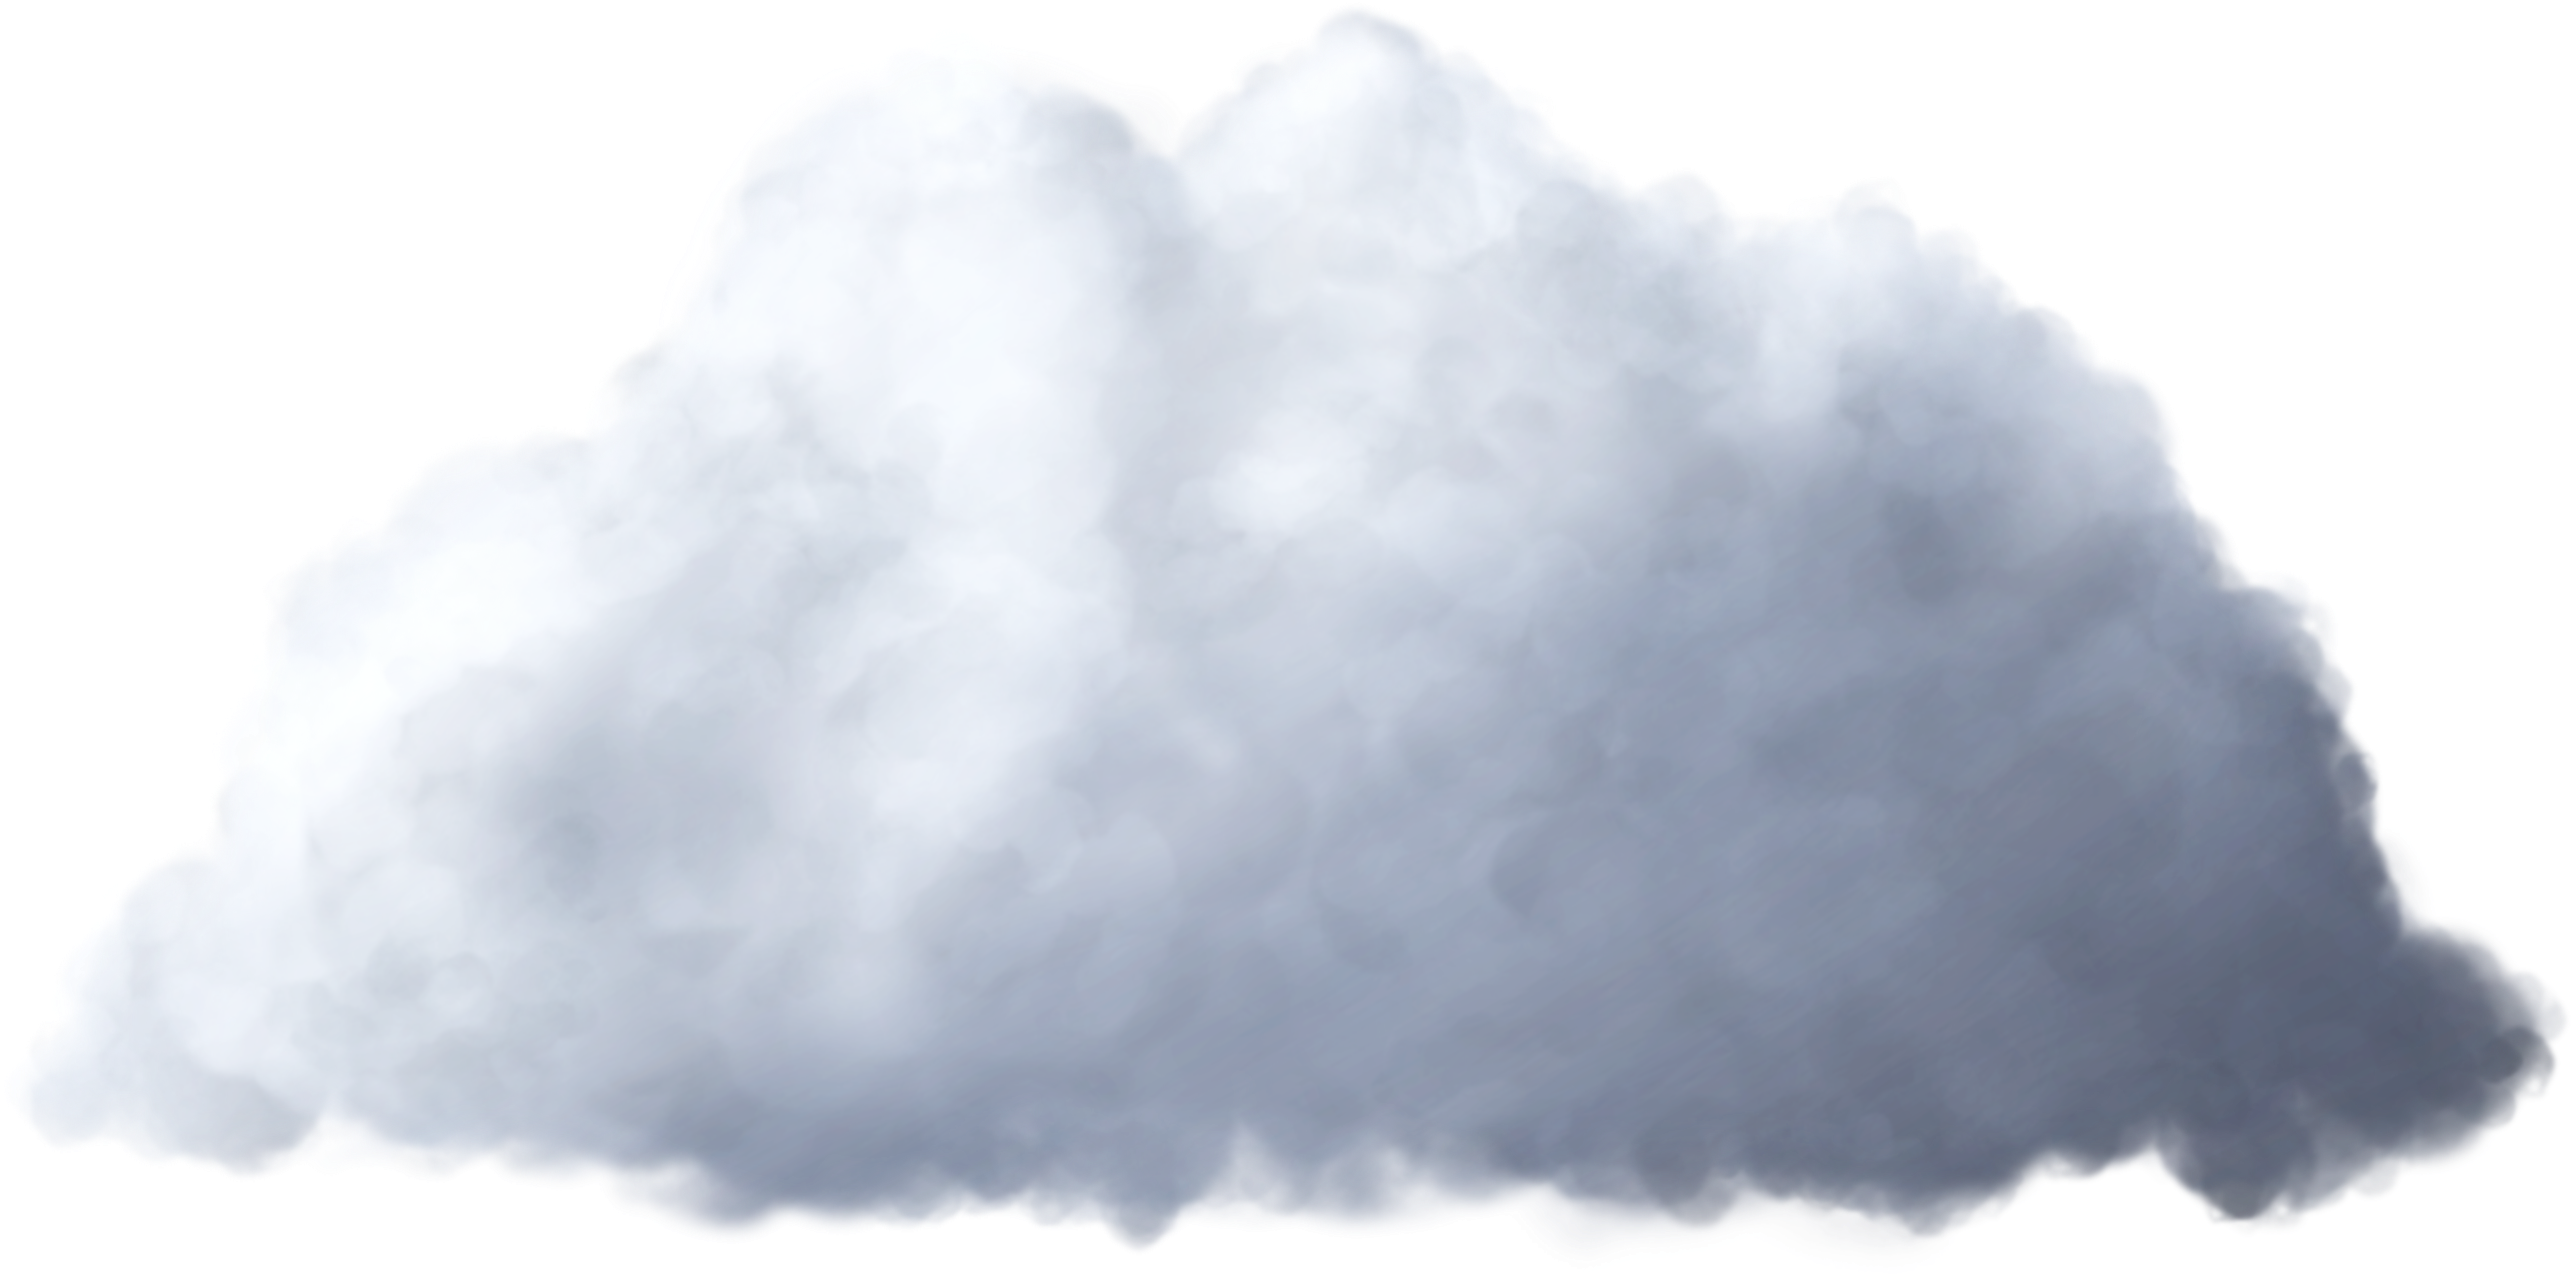 Png Cloud Clouds Background Outdoor